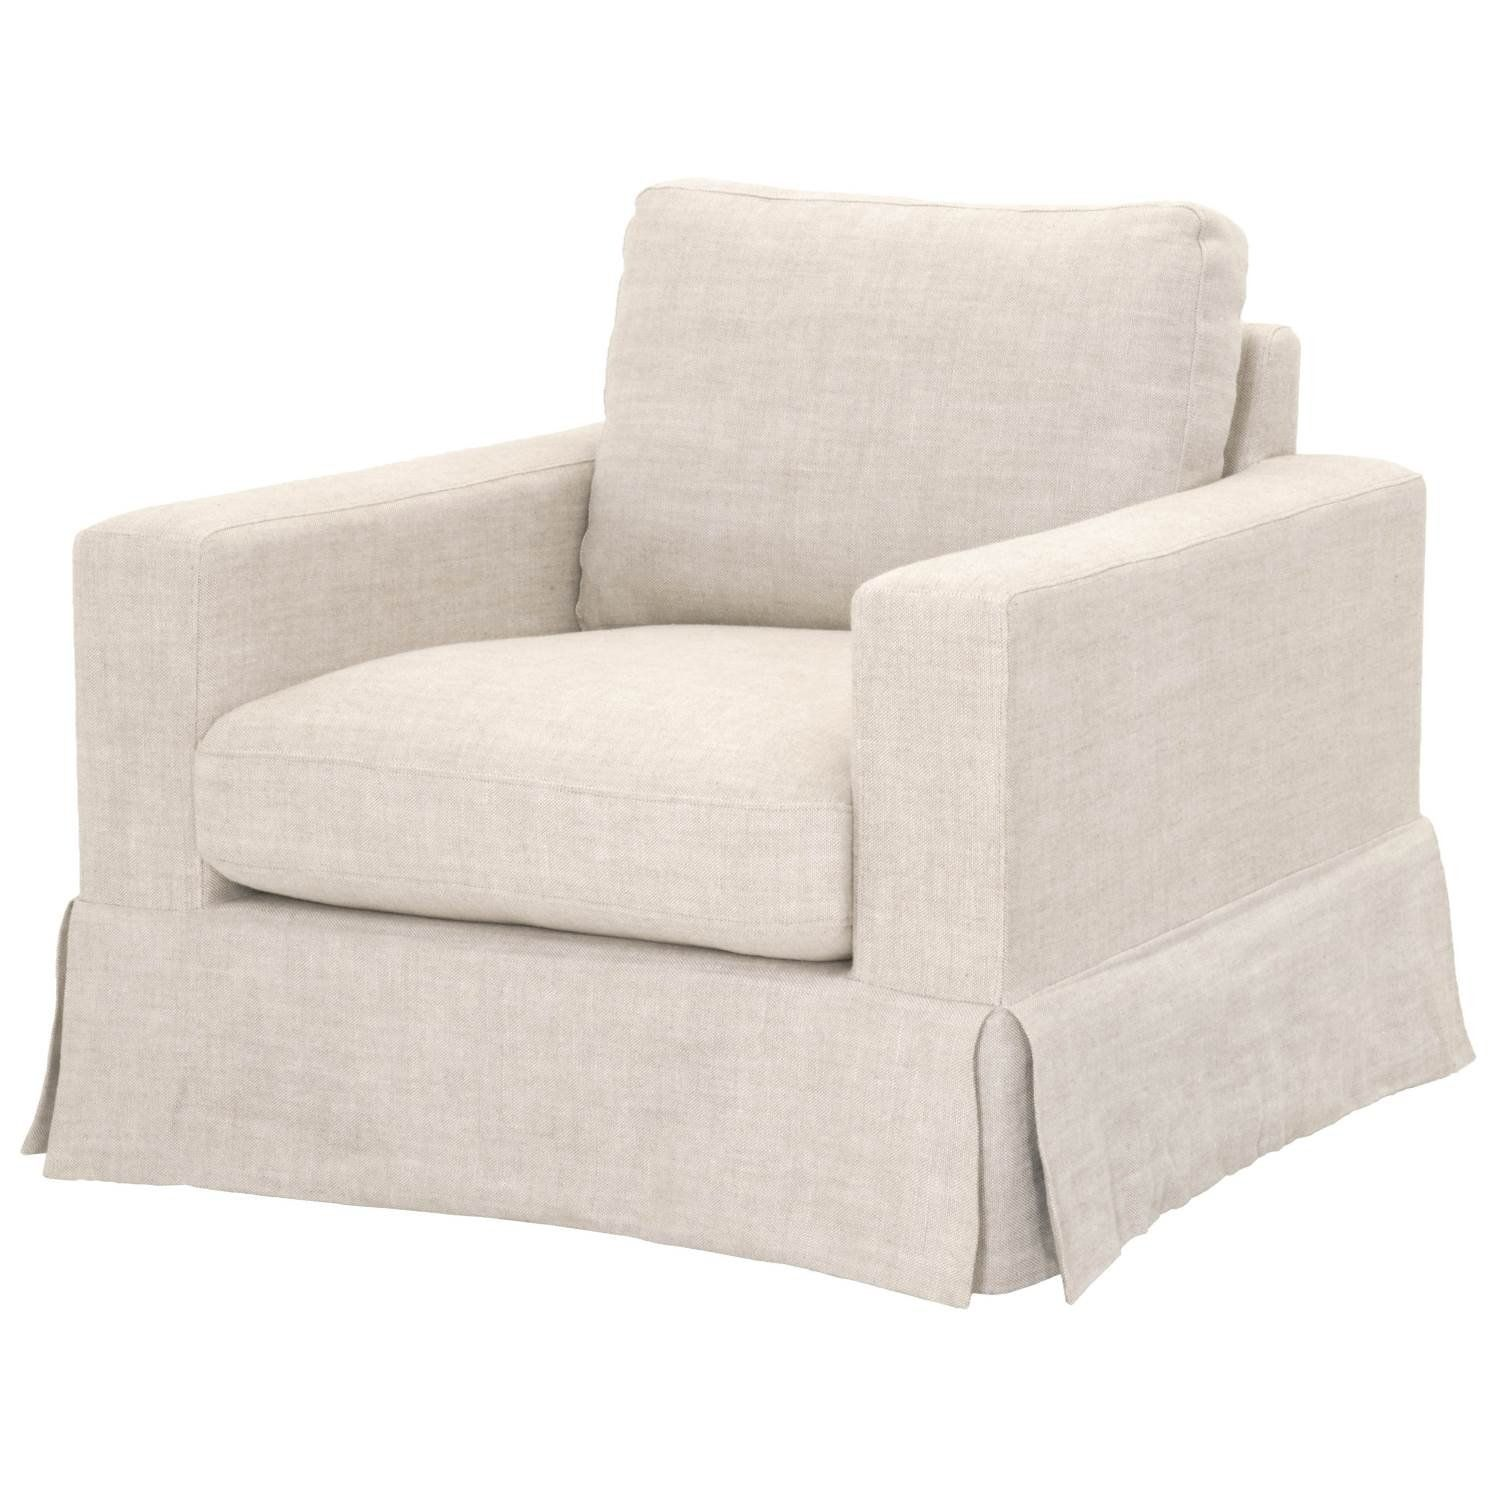 Blu Home Maxwell Sofa Chair Bisque French Linen In 2020 Sofa Chair Chair Sofa Styling